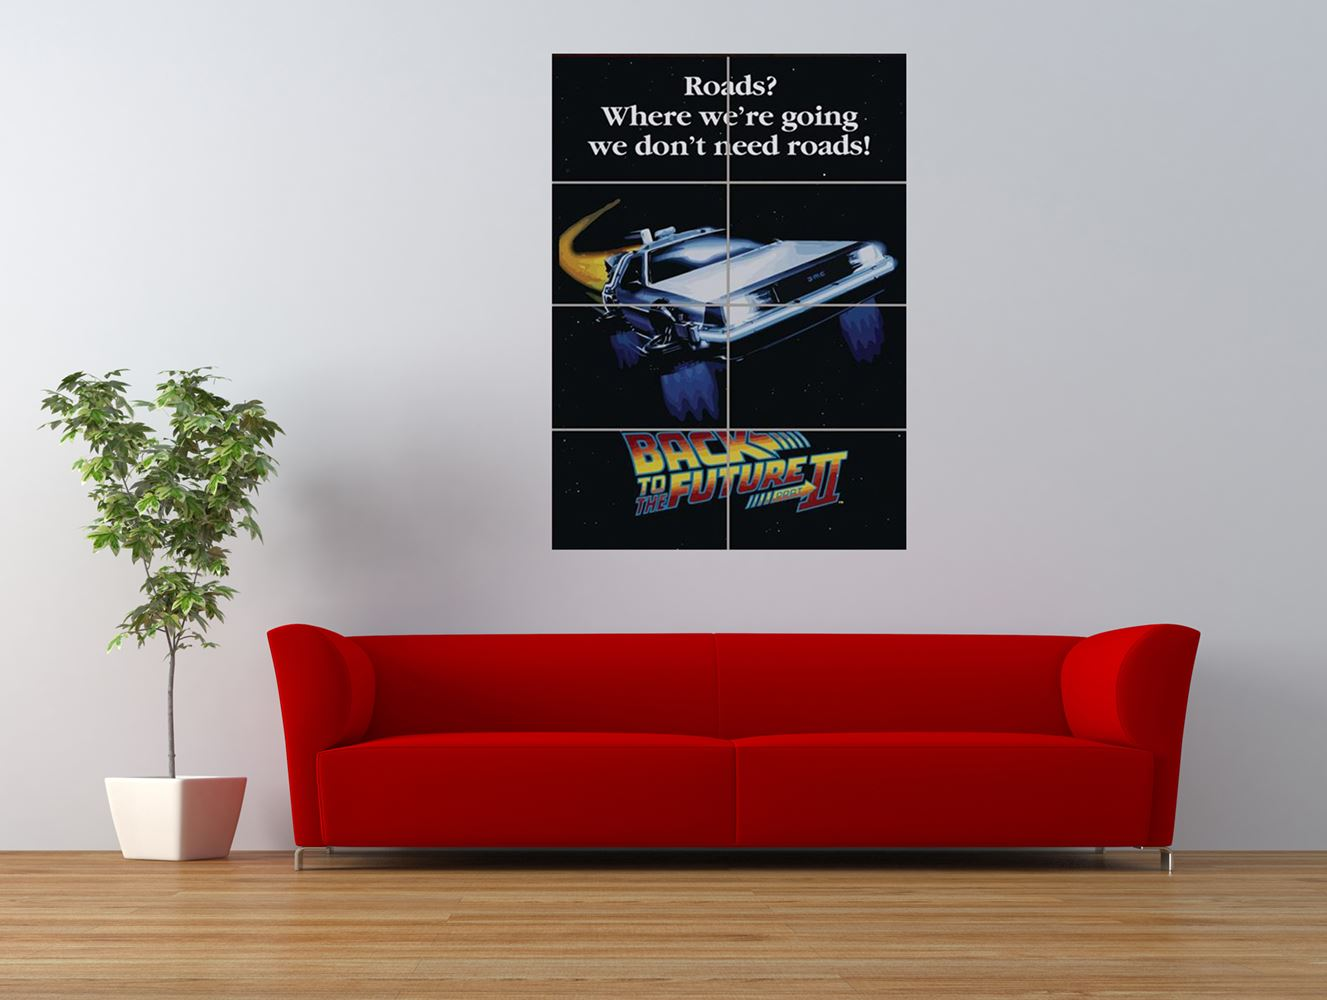 back to the future 2 delorean cult classic giant art print panel poster nor0185 ebay. Black Bedroom Furniture Sets. Home Design Ideas